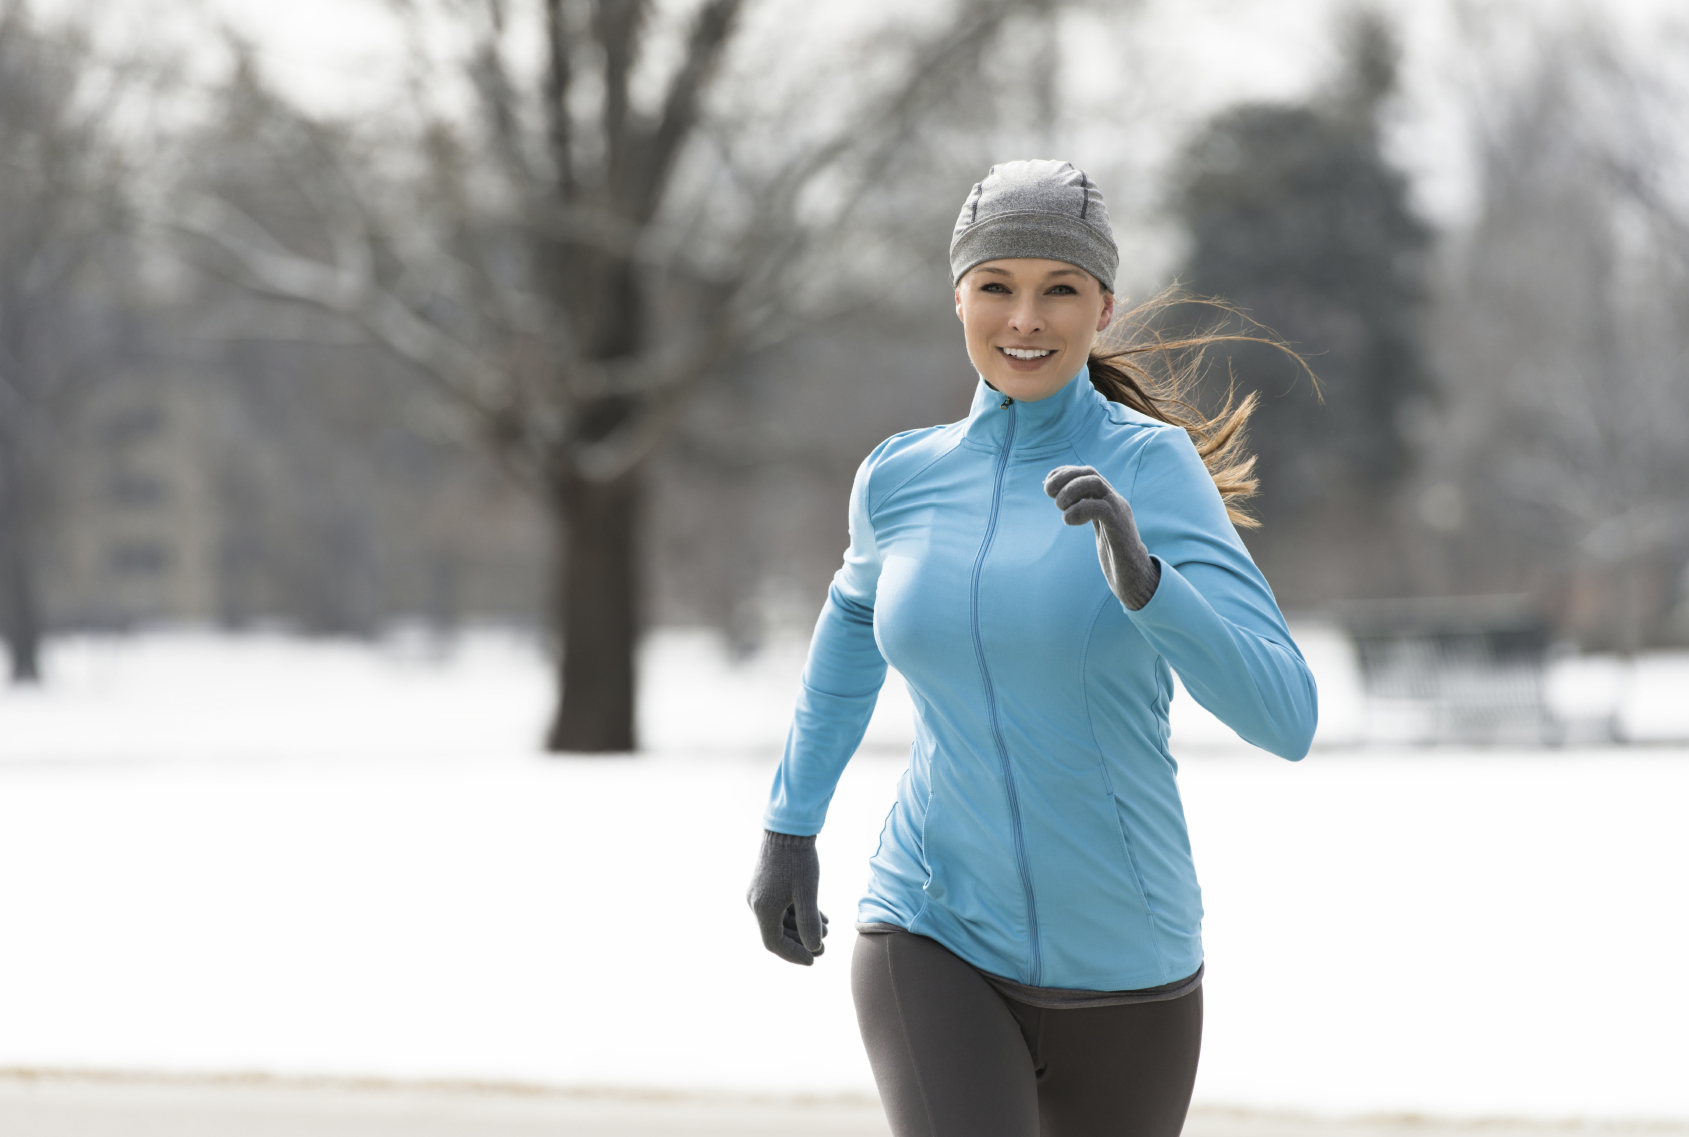 Young Woman Running in Snowy Park